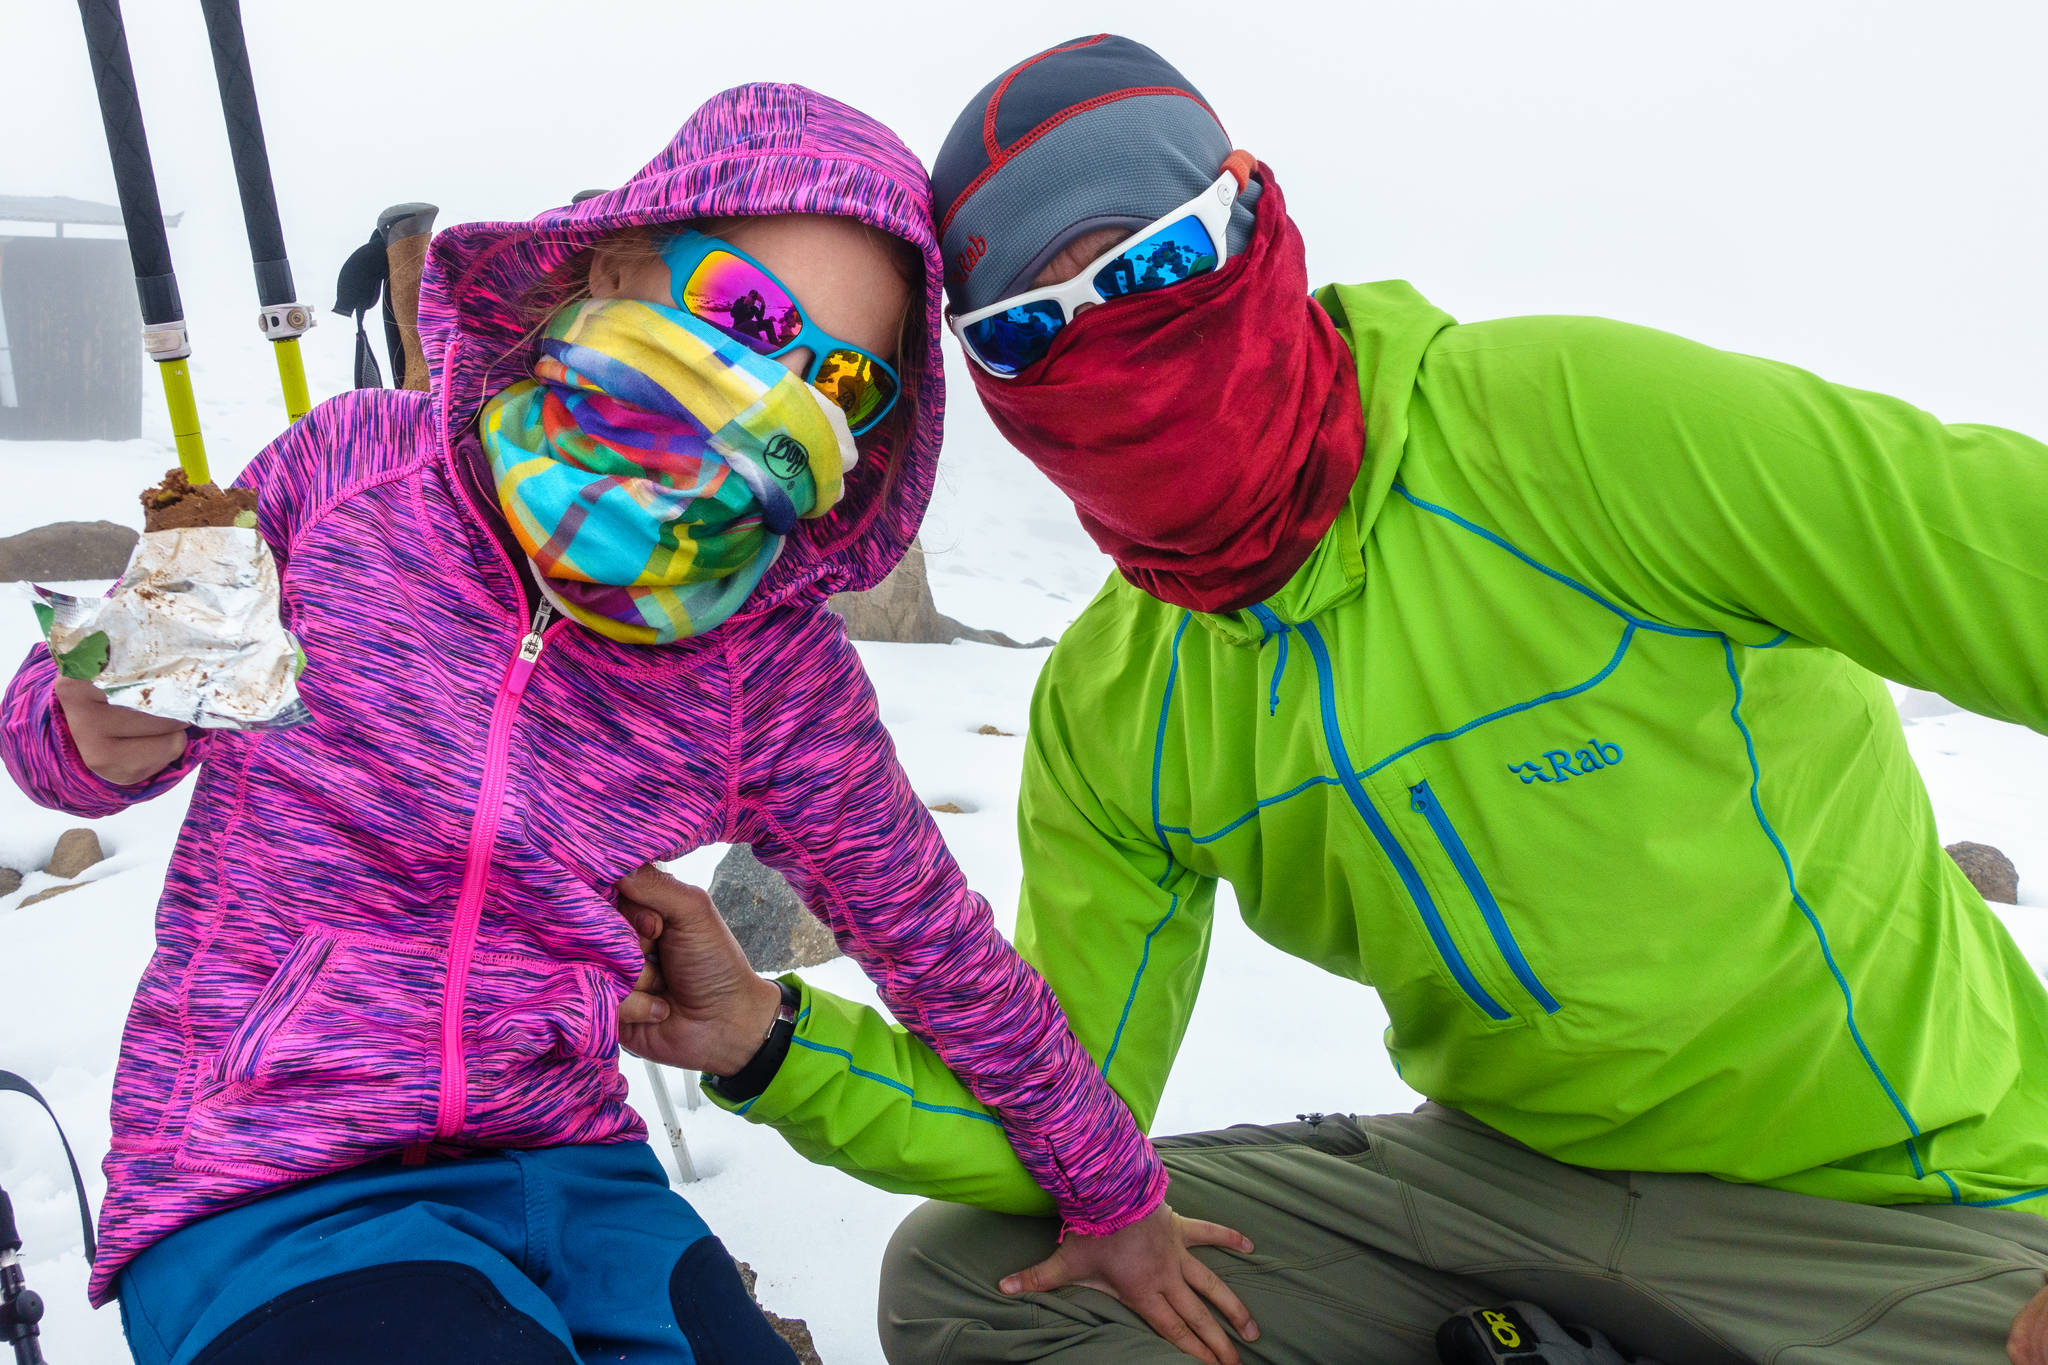 Avery Walden, then 9, poses with her father Chris Walden on the side of Mt. Kilimanjaro in Tanzania on Jan. 4, 2017. The Waldens and a family friend climbed the famous mountain in January, making Avery the youngest female to ascend the mountain. (Photo courtesy Chris Walden)